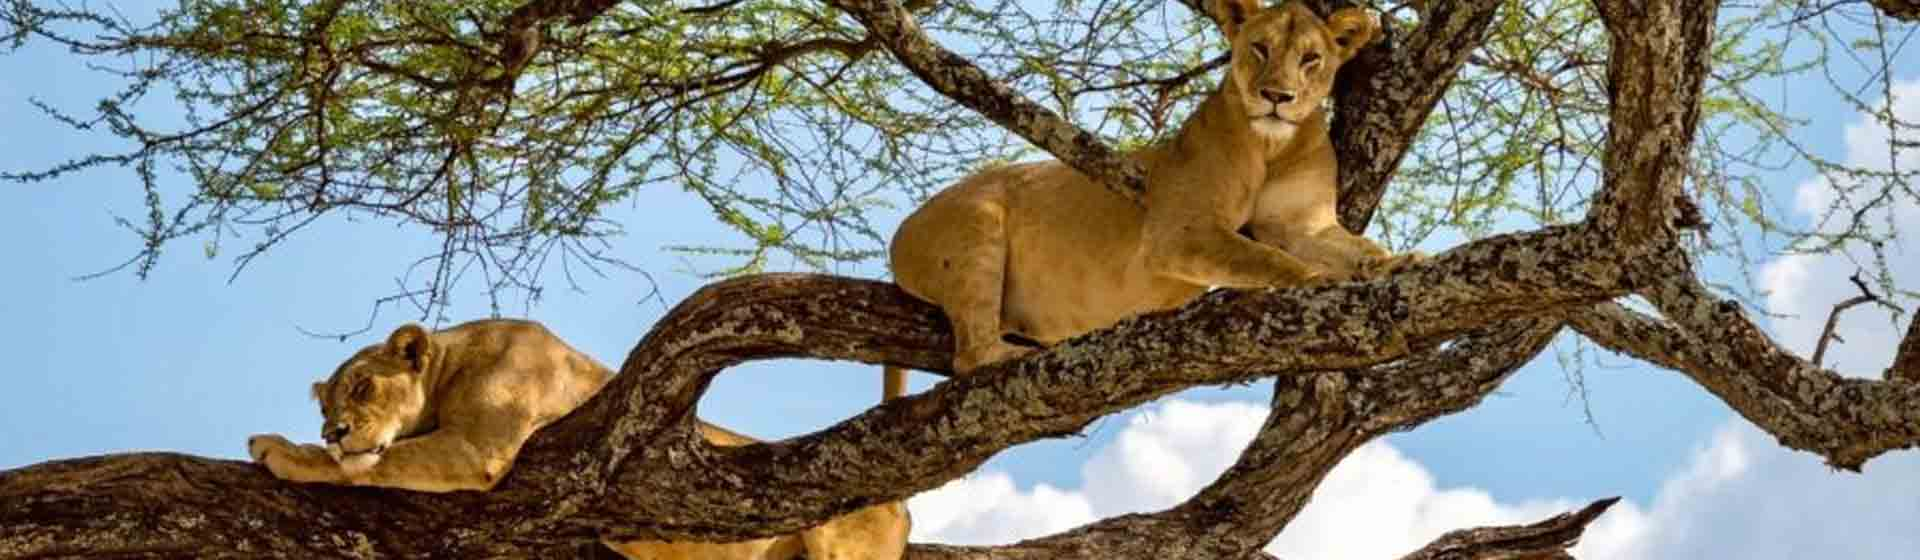 Kenya and Tanzania combined safari| tree climbing lions in Lake Manyara national park